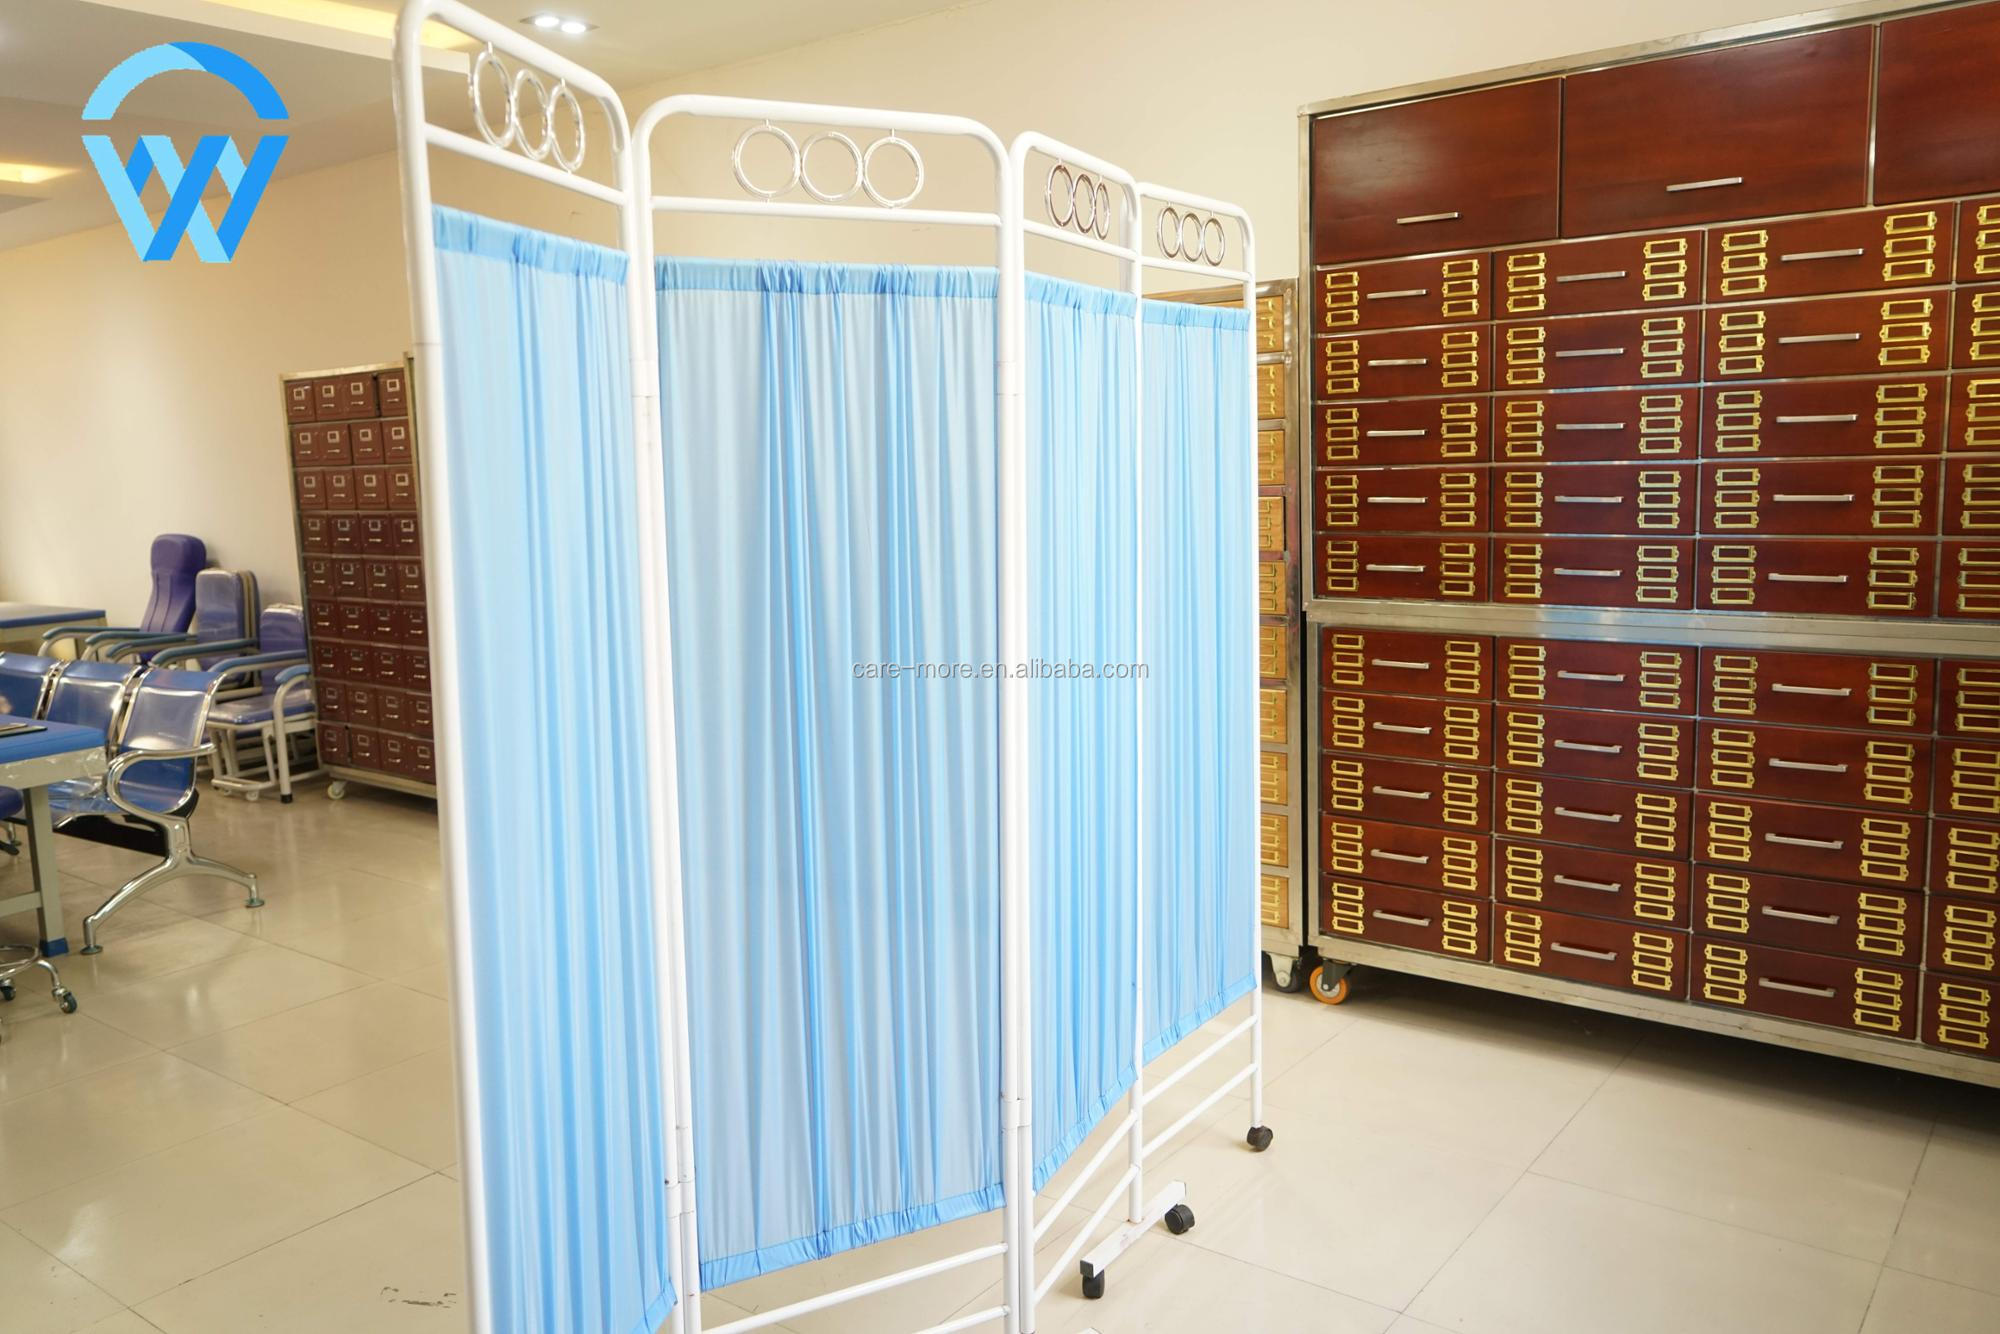 Durable Stainless Steel and Iron Material Medical Bedside Screen Three Folding Hospital Ward Screen